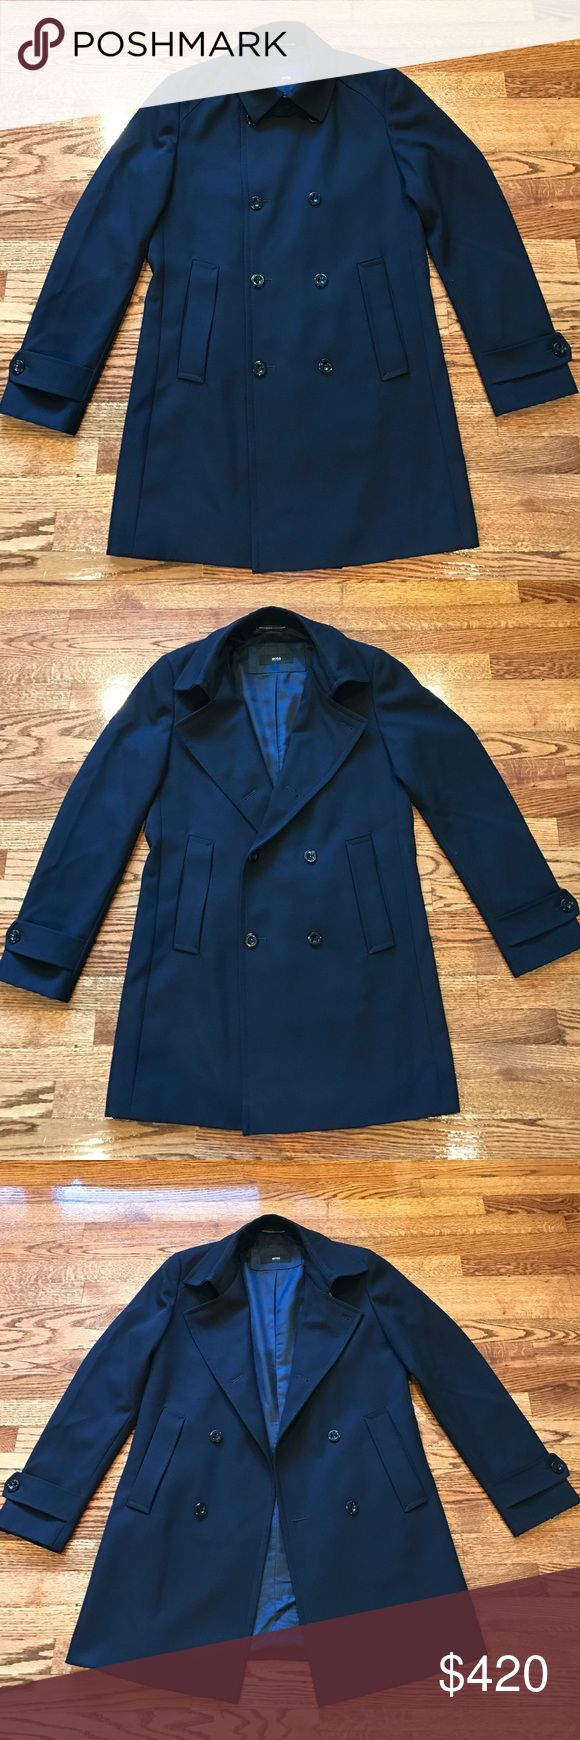 Flash sale💰Hugo Boss coat for men. Only worn couple times. Just like new, no stain. No flaw. No trade Hugo Boss Jackets & Coats